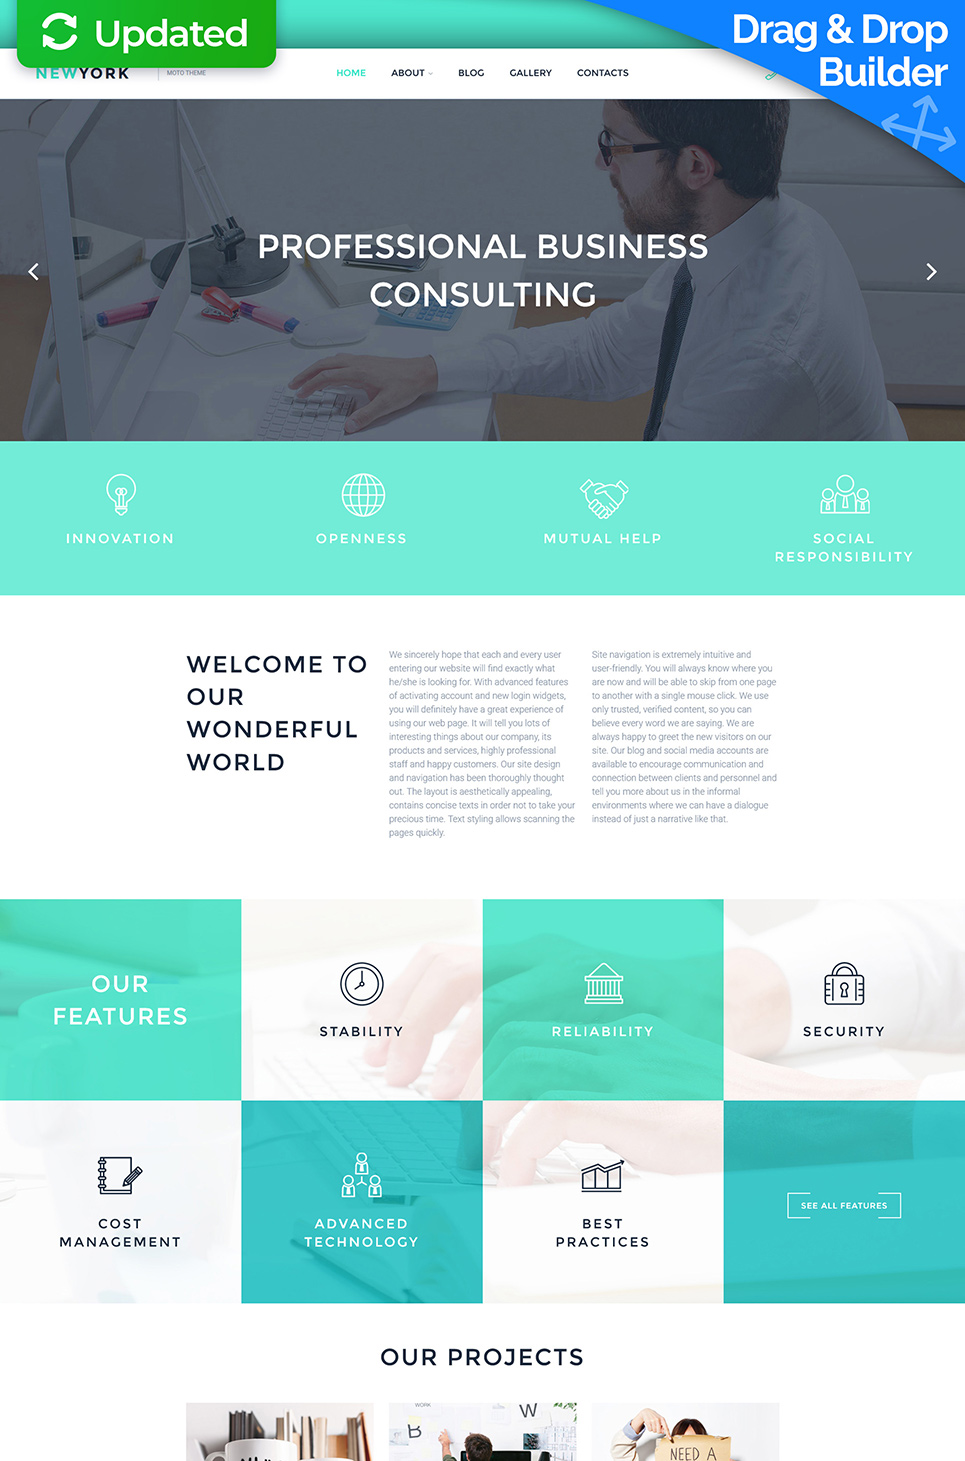 Consulting Company Website Design - image